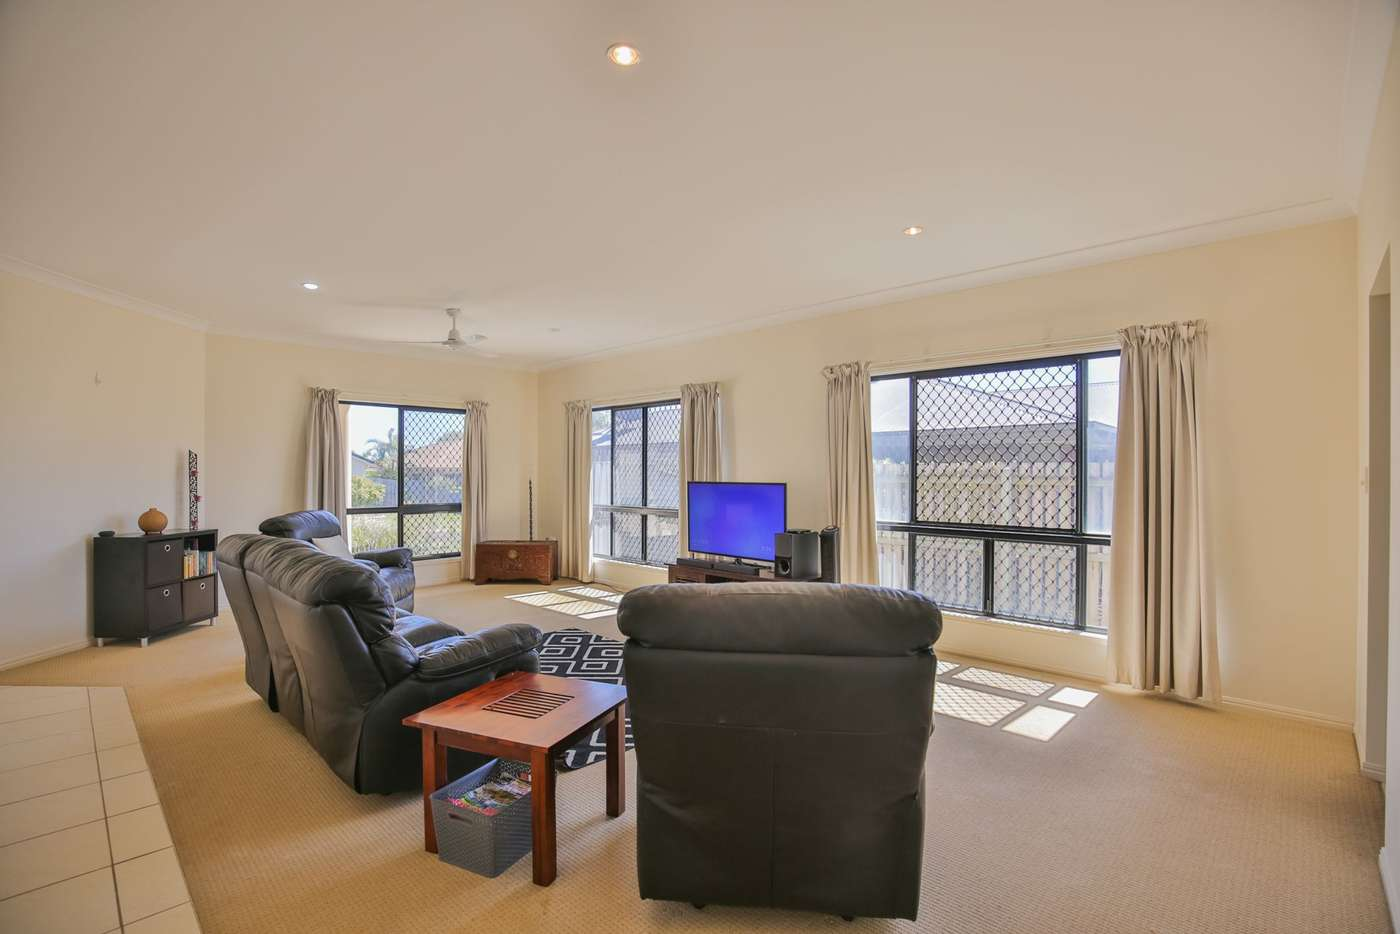 Seventh view of Homely house listing, 18 McCallum Close, Coral Cove QLD 4670